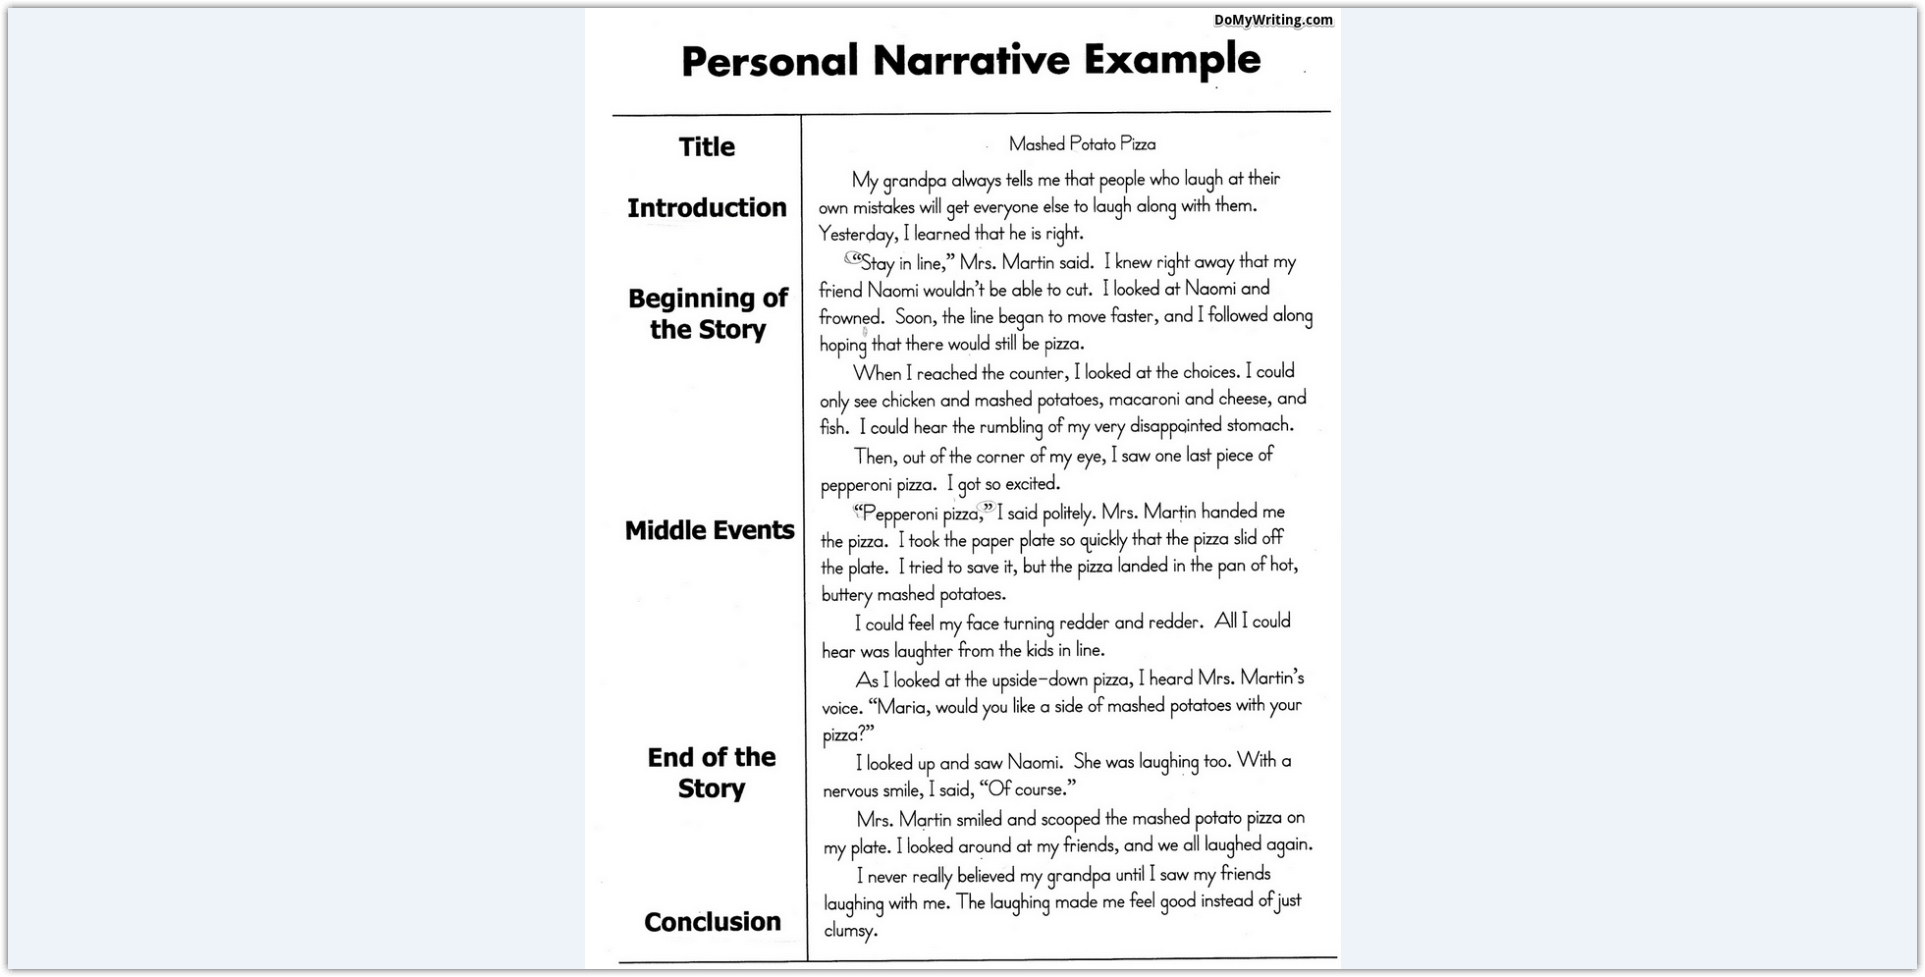 007 Narrative Essay Breathtaking Example Examples 4th Grade College Topics Students Full